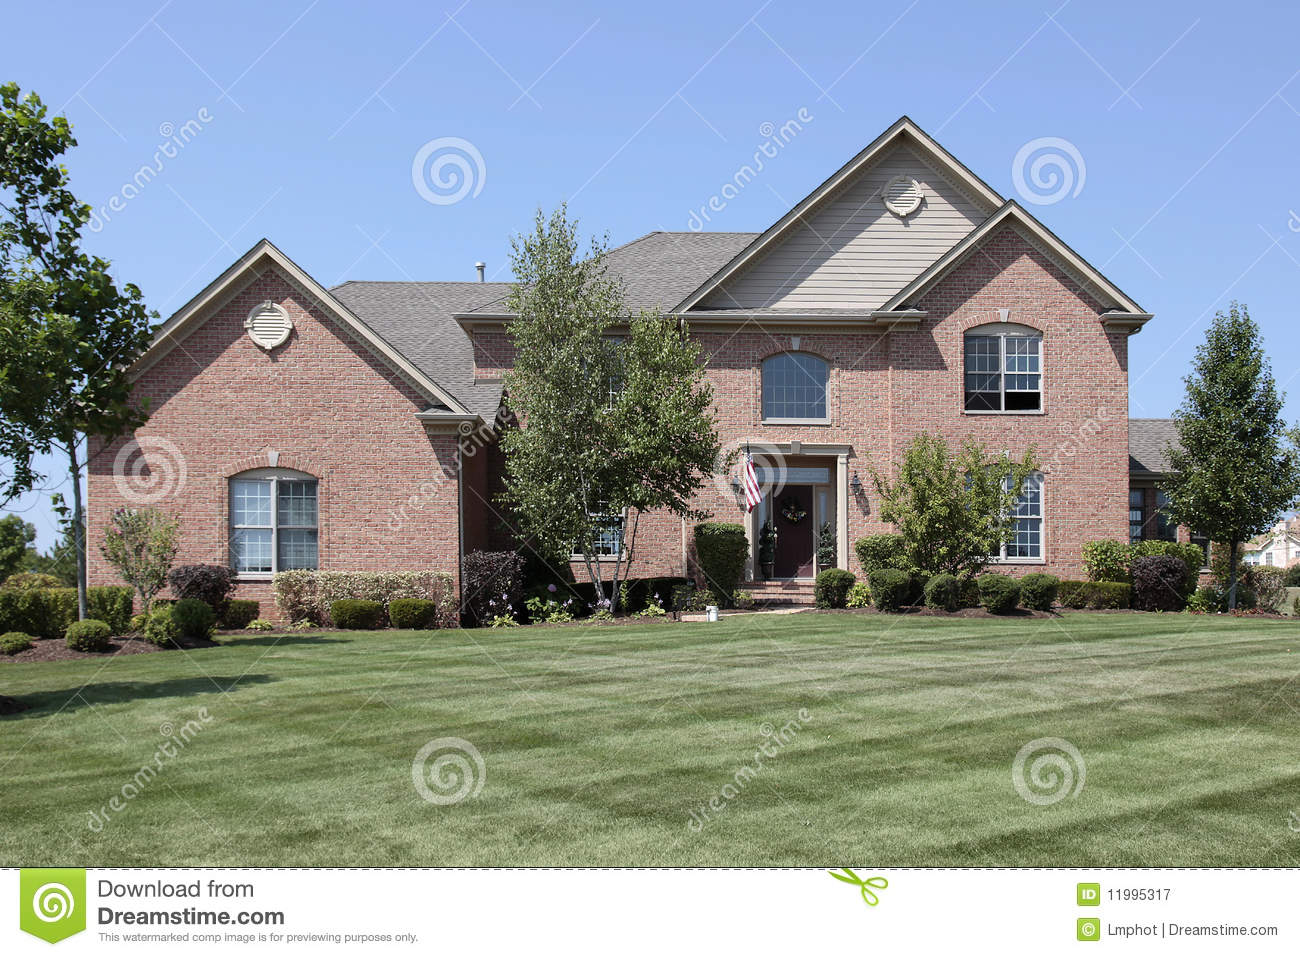 Luxury brick home in suburbs stock image image 11995317 for Luxury brick house plans